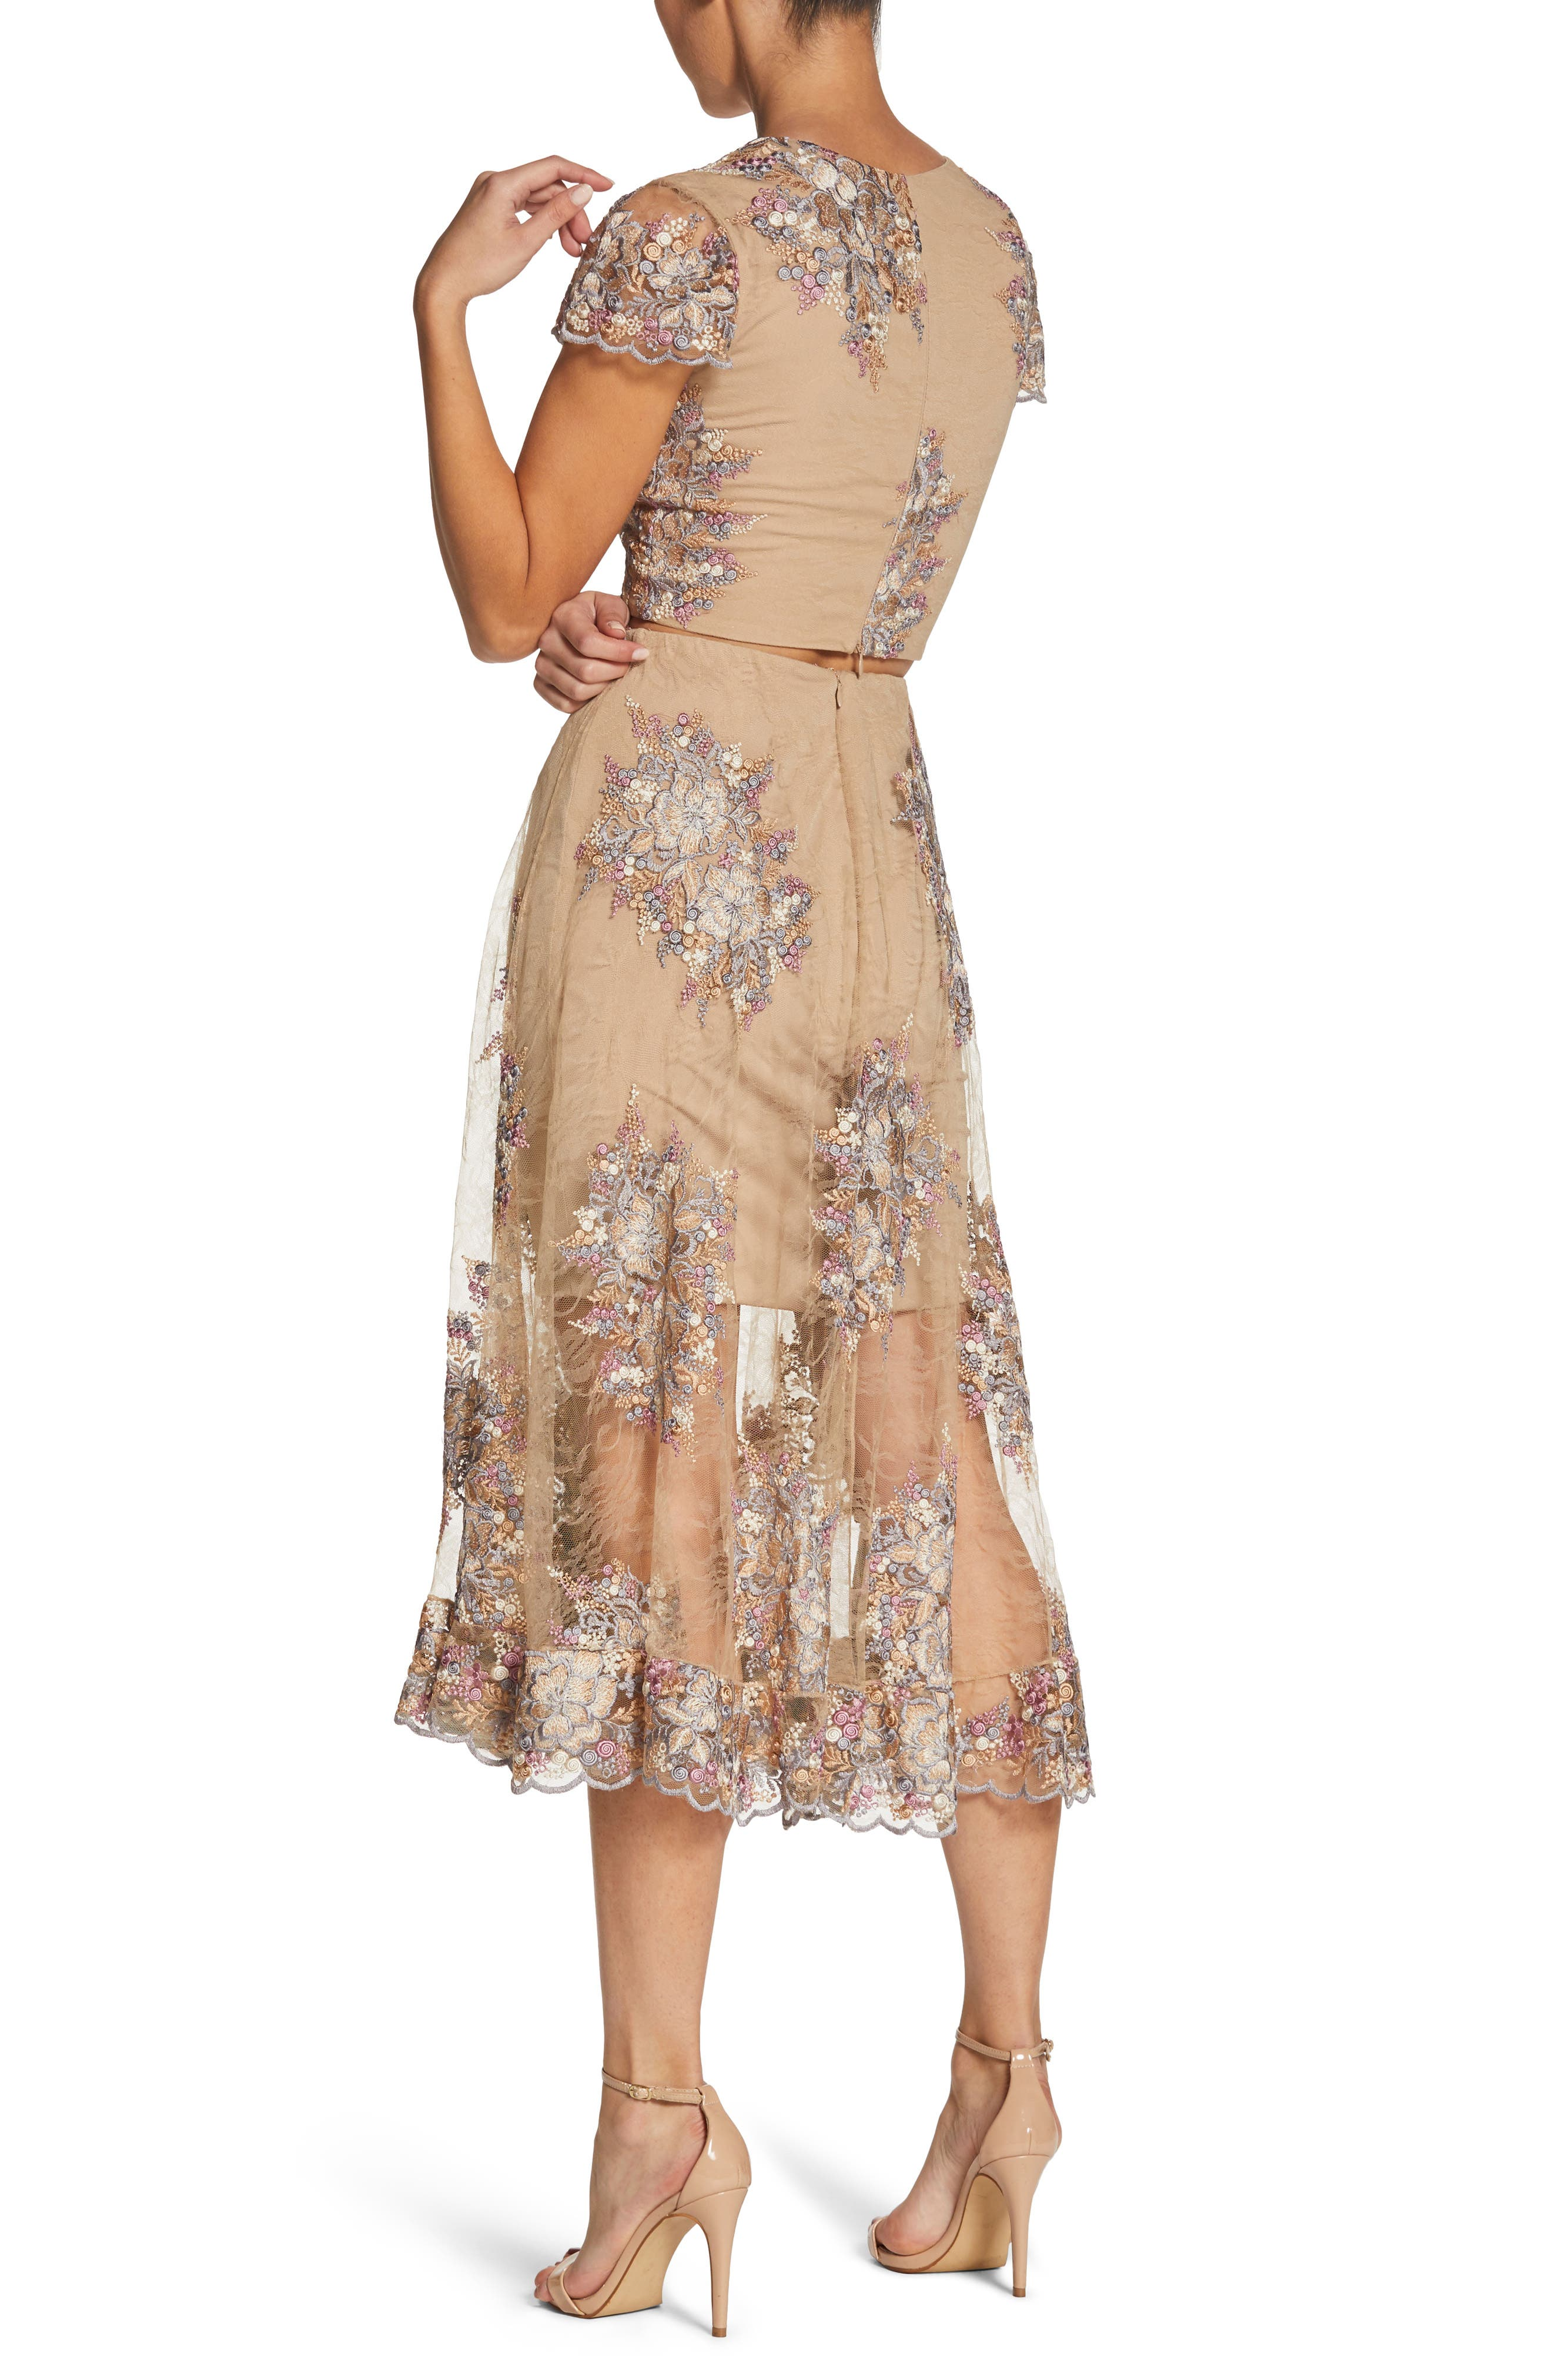 Juliana Two-Piece Dress,                             Alternate thumbnail 2, color,                             Nude/ Floral